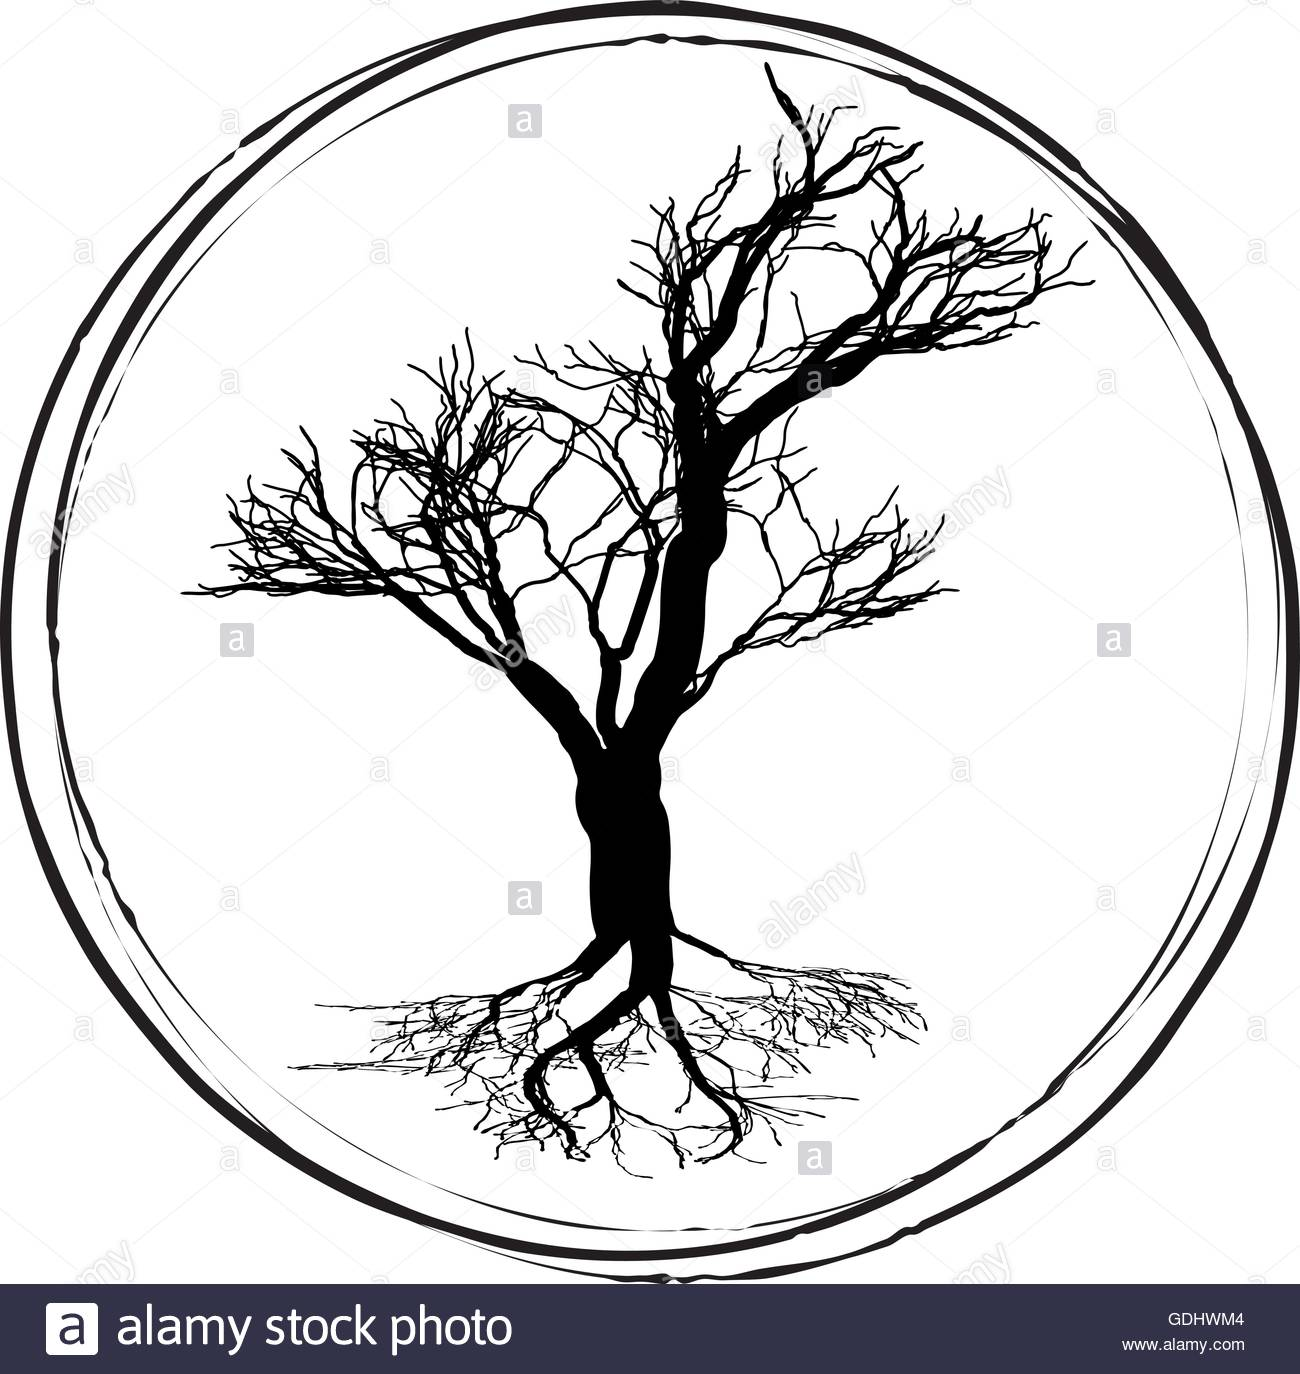 1300x1374 Blacknd White Drawing Of Deciduous Tree. Black Silhouette On